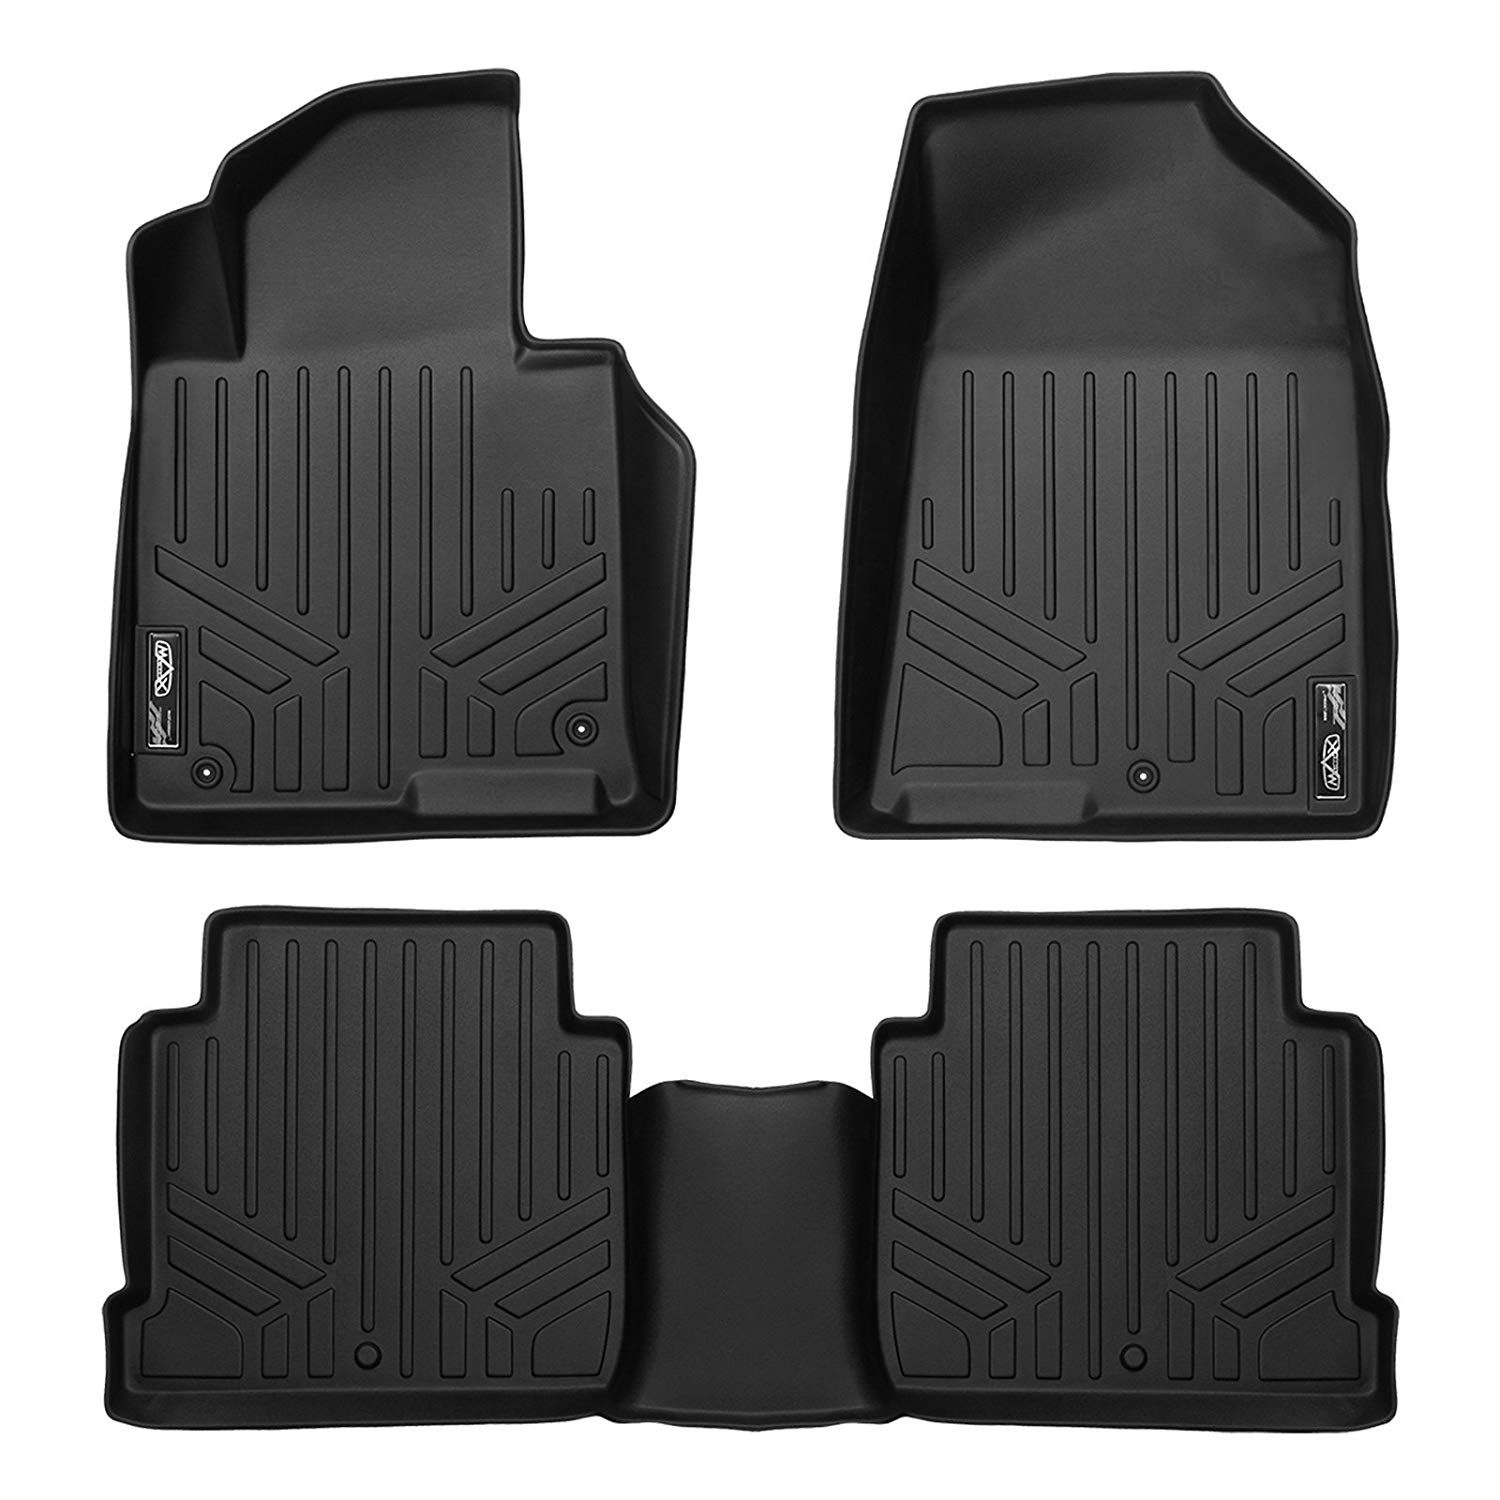 SMARTLINER Floor Mats 2 Row Liner Set Black for 2016-2018 Honda HR-V